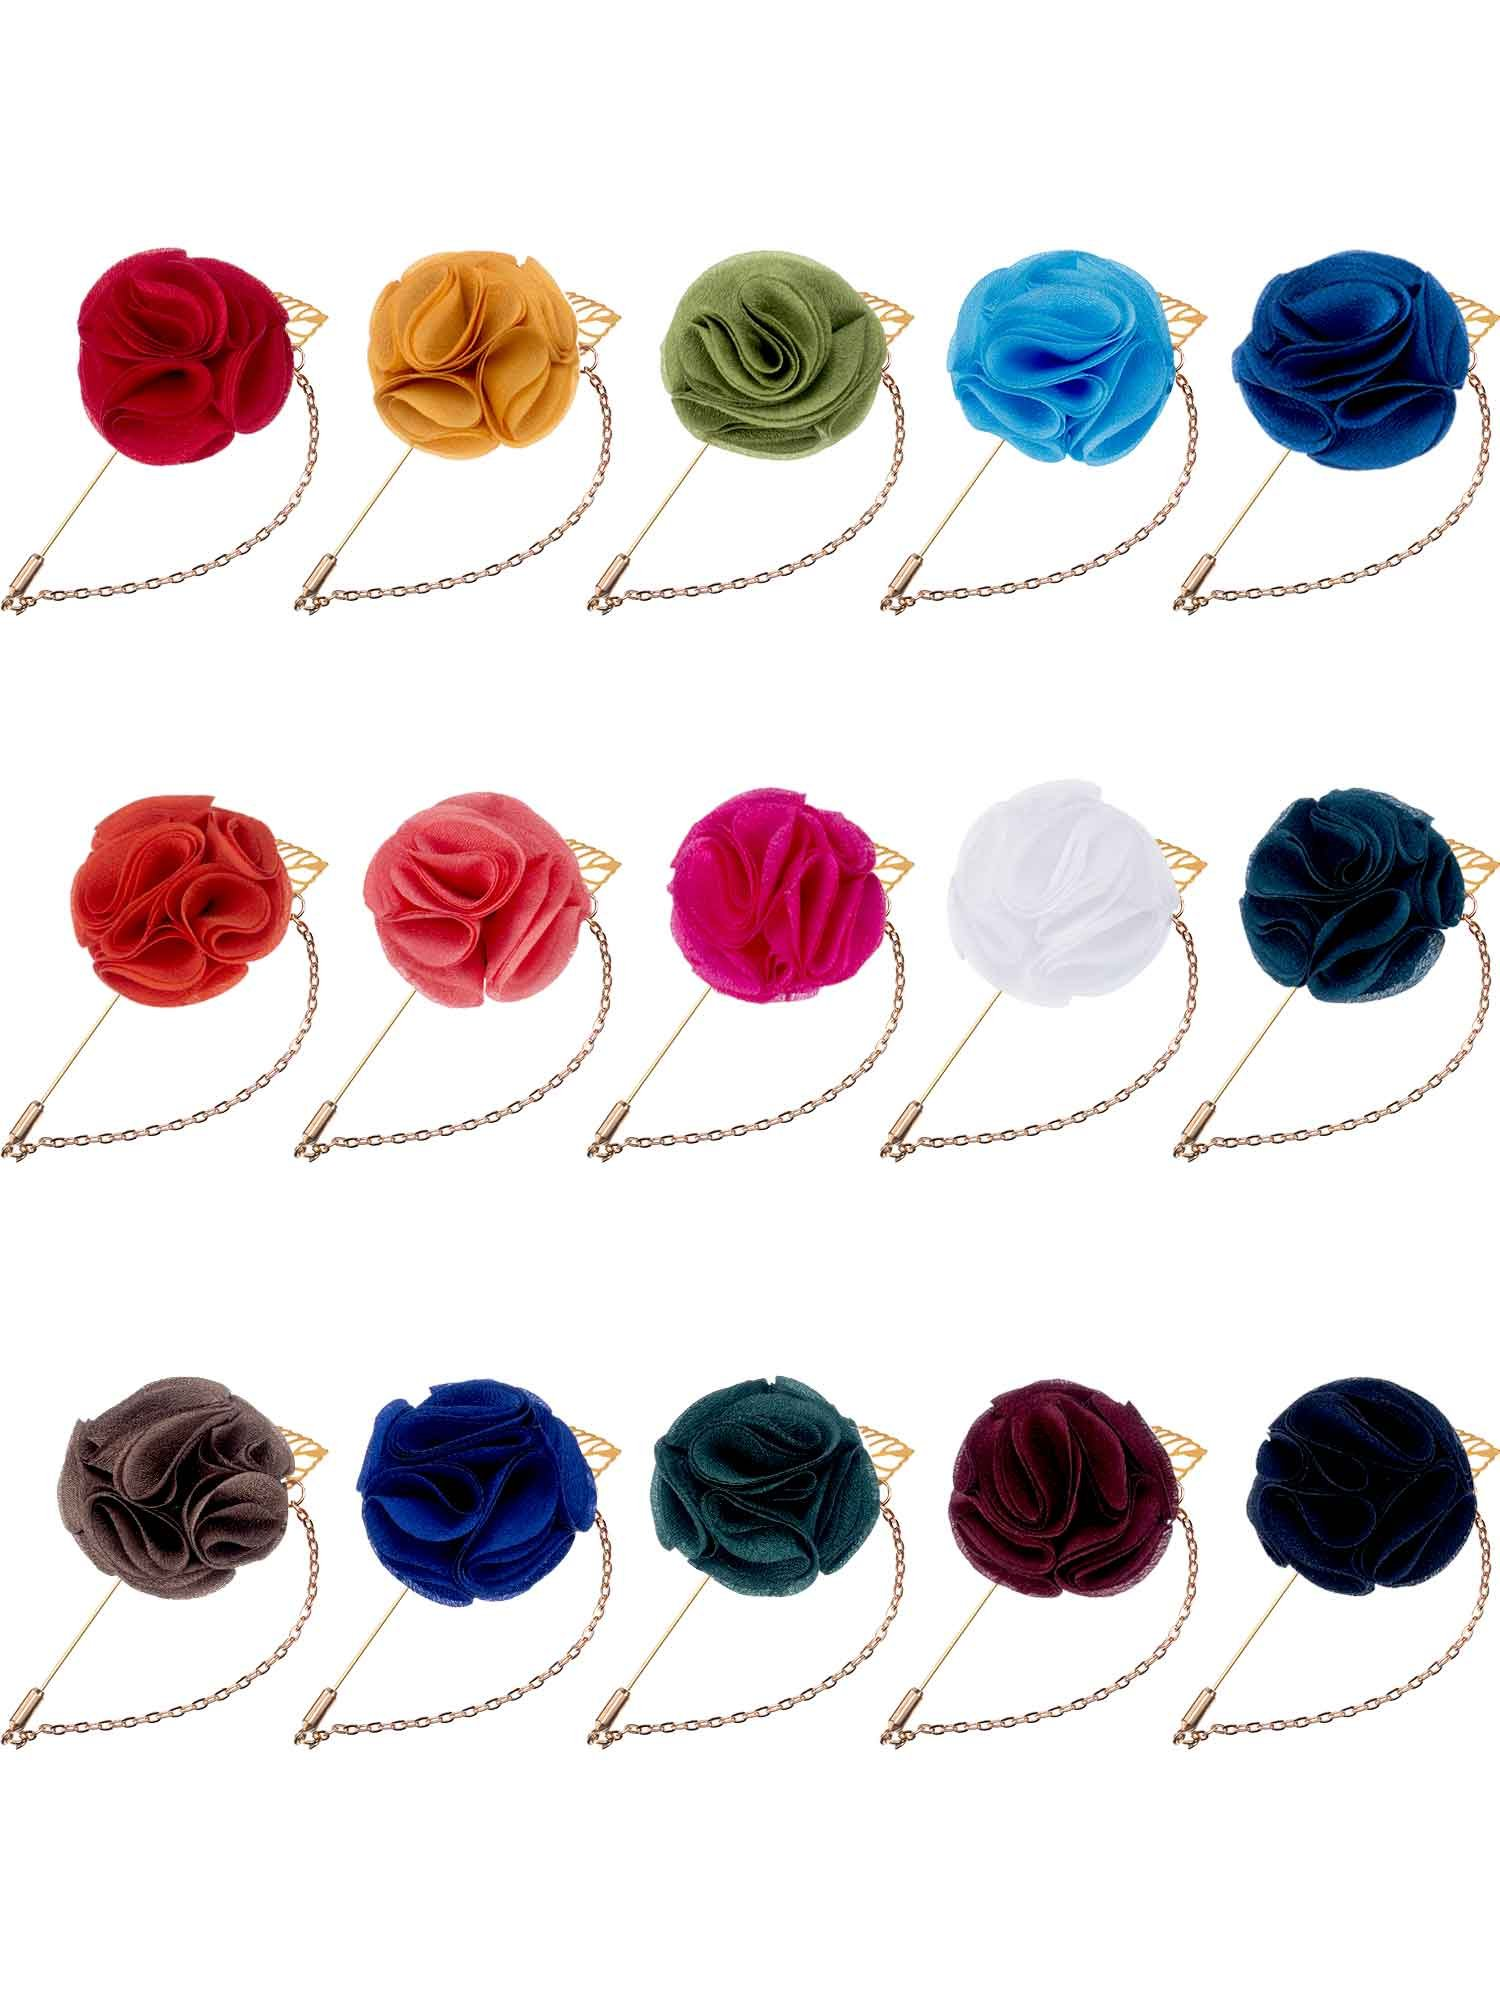 Hestya Men's Satin Lapel Pins with Metal Chain, Handmade Boutonniere Pins with Metal Chain and Storage Box (15 Colors)